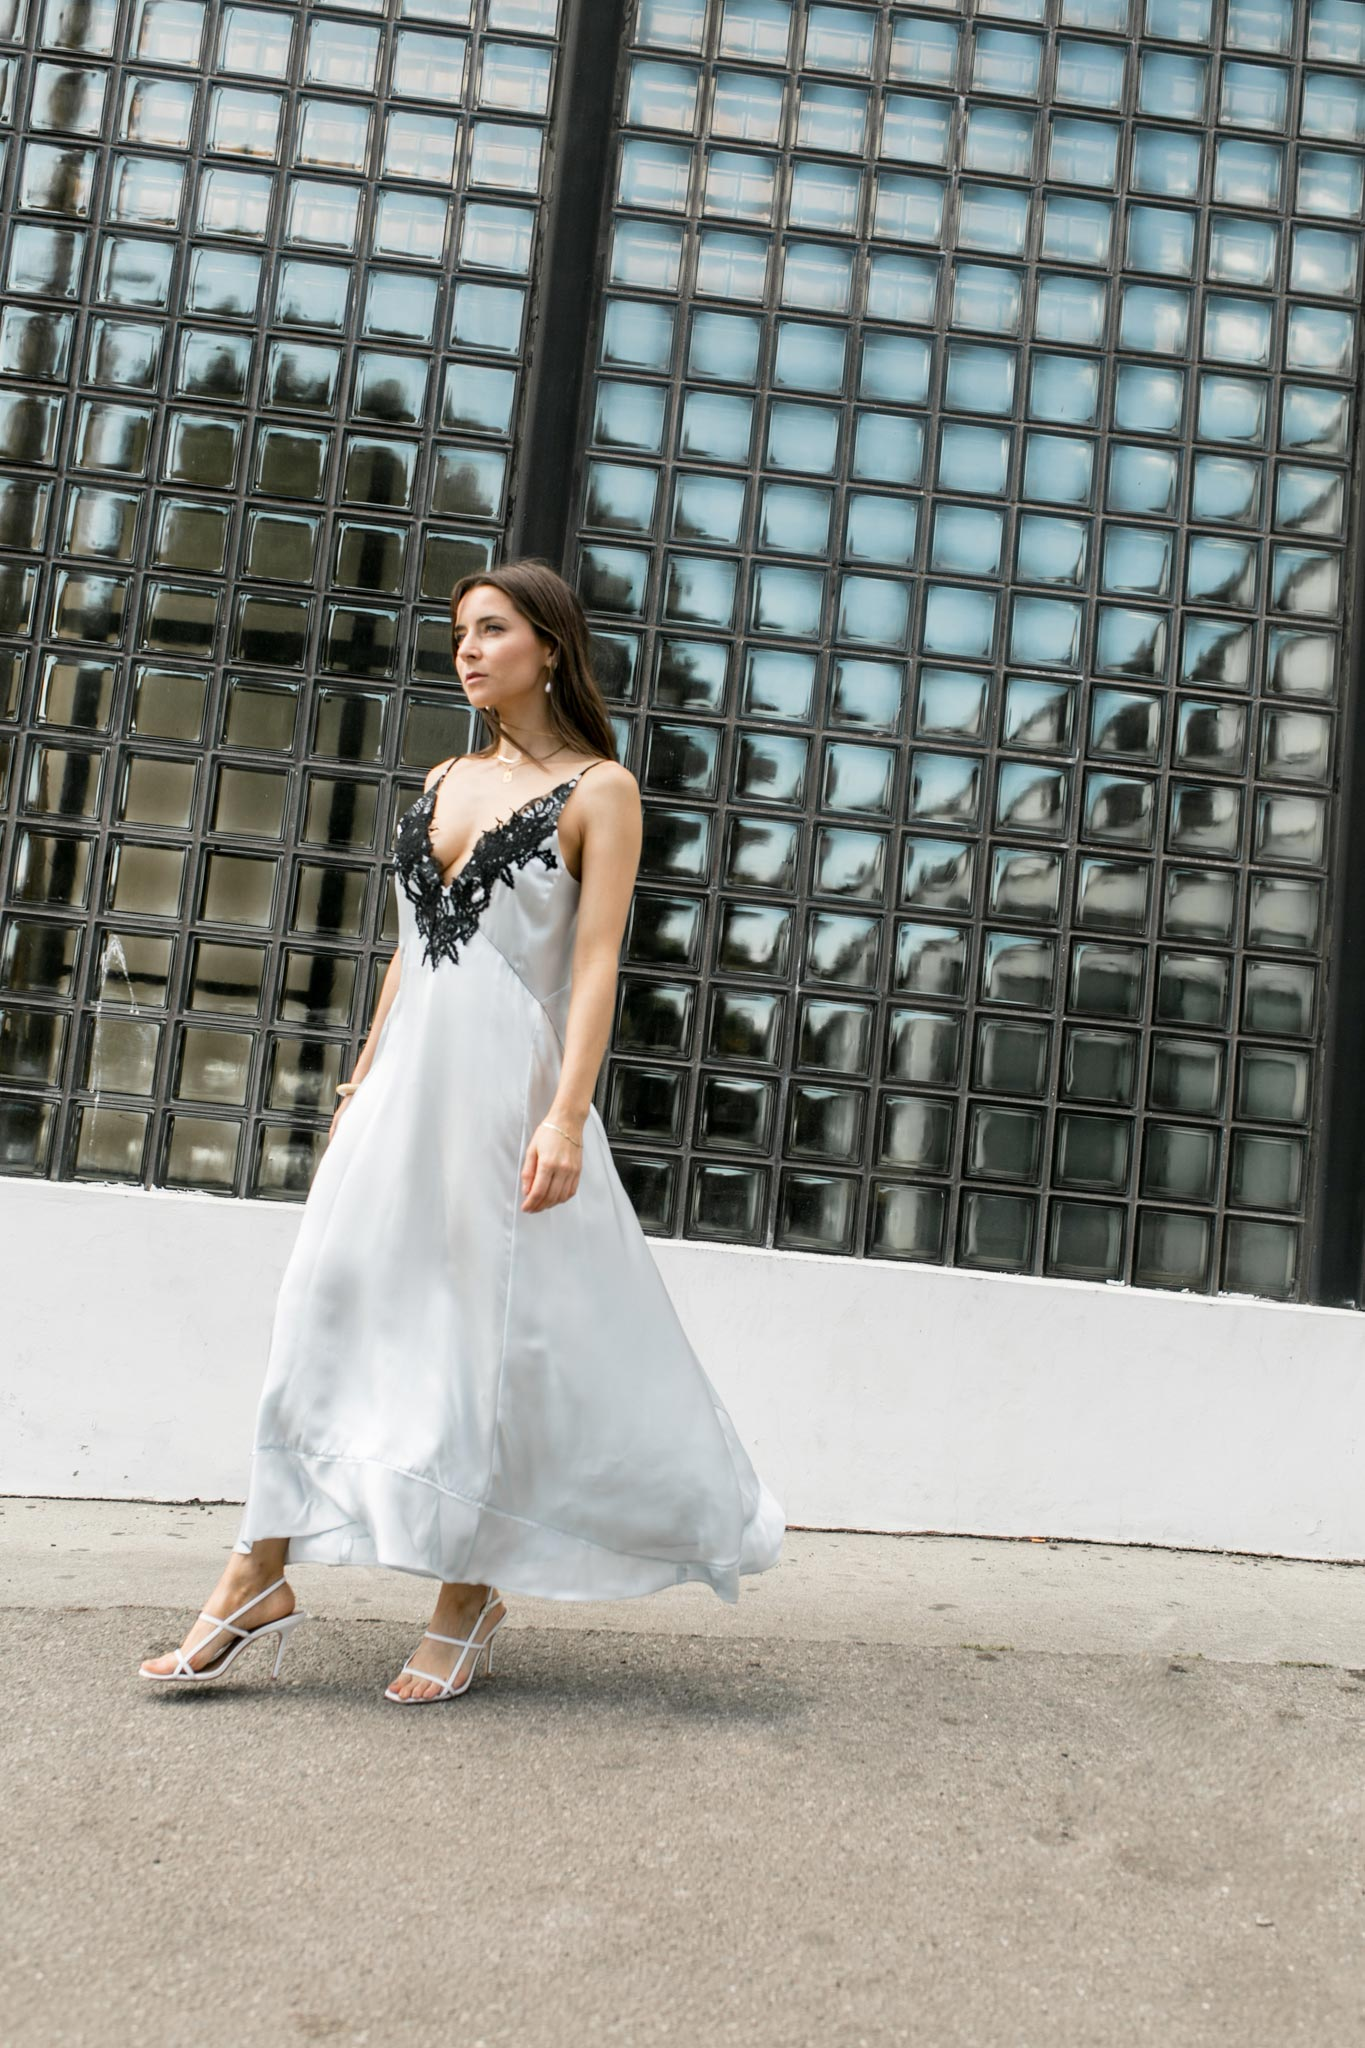 90's style: How to wear the satin slip dress - by french fashion blogger julia comil